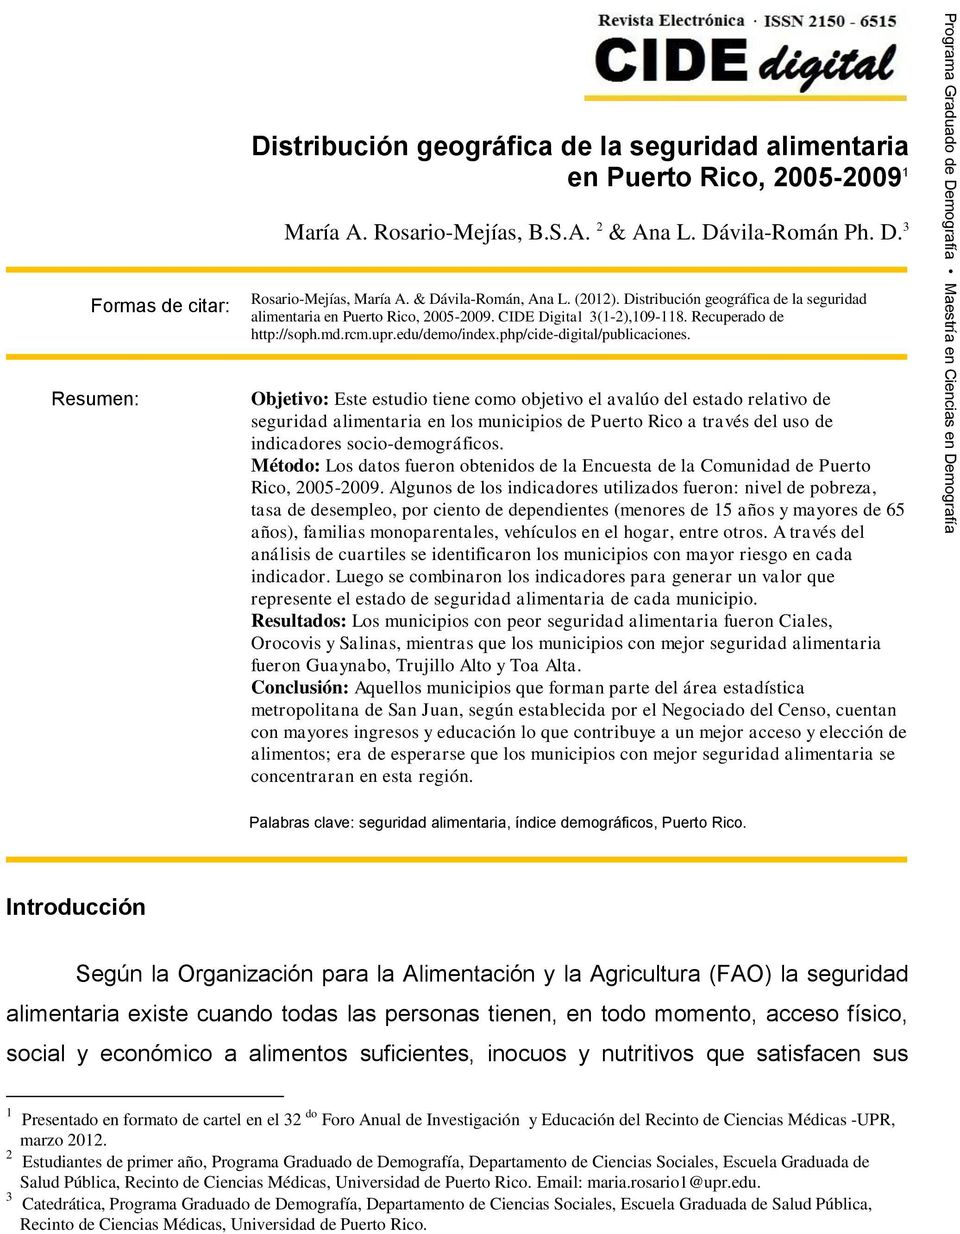 CIDE Digital 3(1-2),109-118. Recuperado de http://soph.md.rcm.upr.edu/demo/index.php/cide-digital/publicaciones.